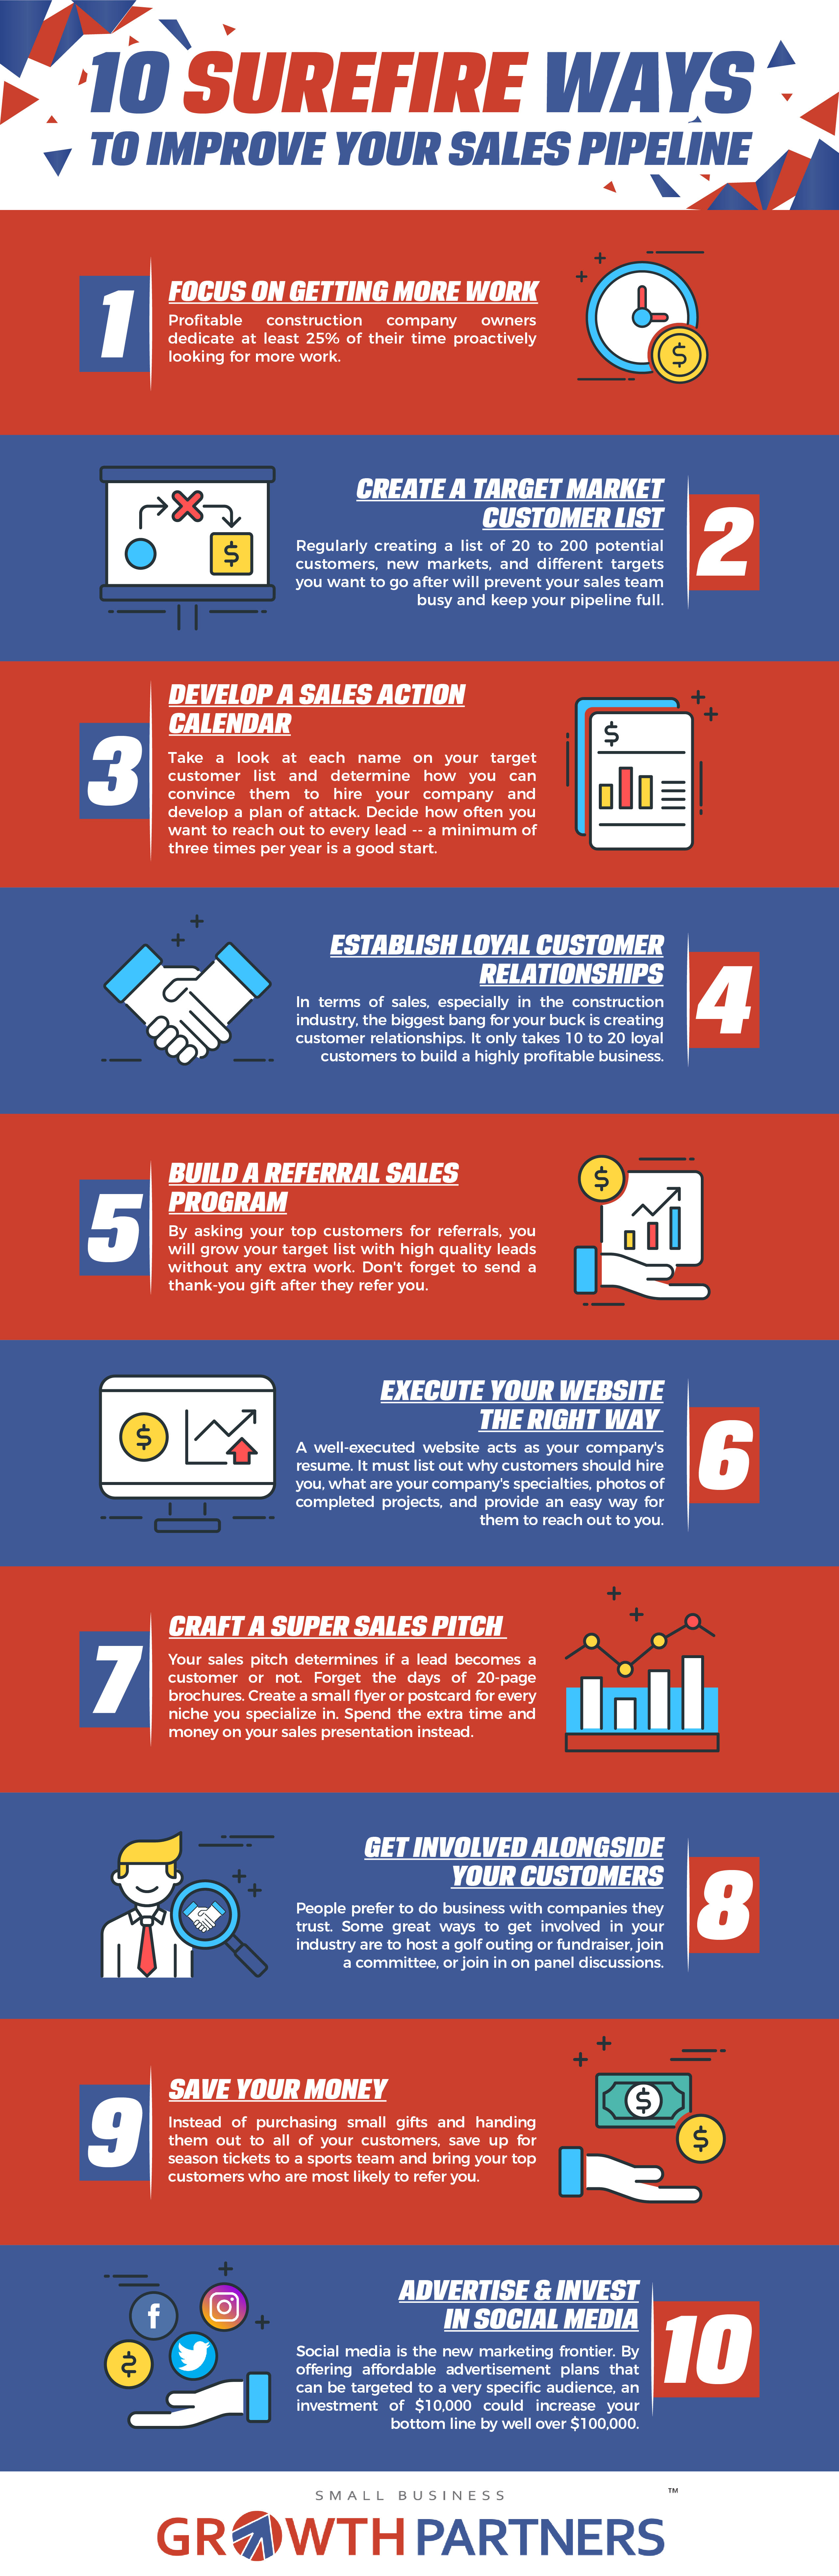 10 Surefire Ways to Improve Your Sales Pipeline - Small